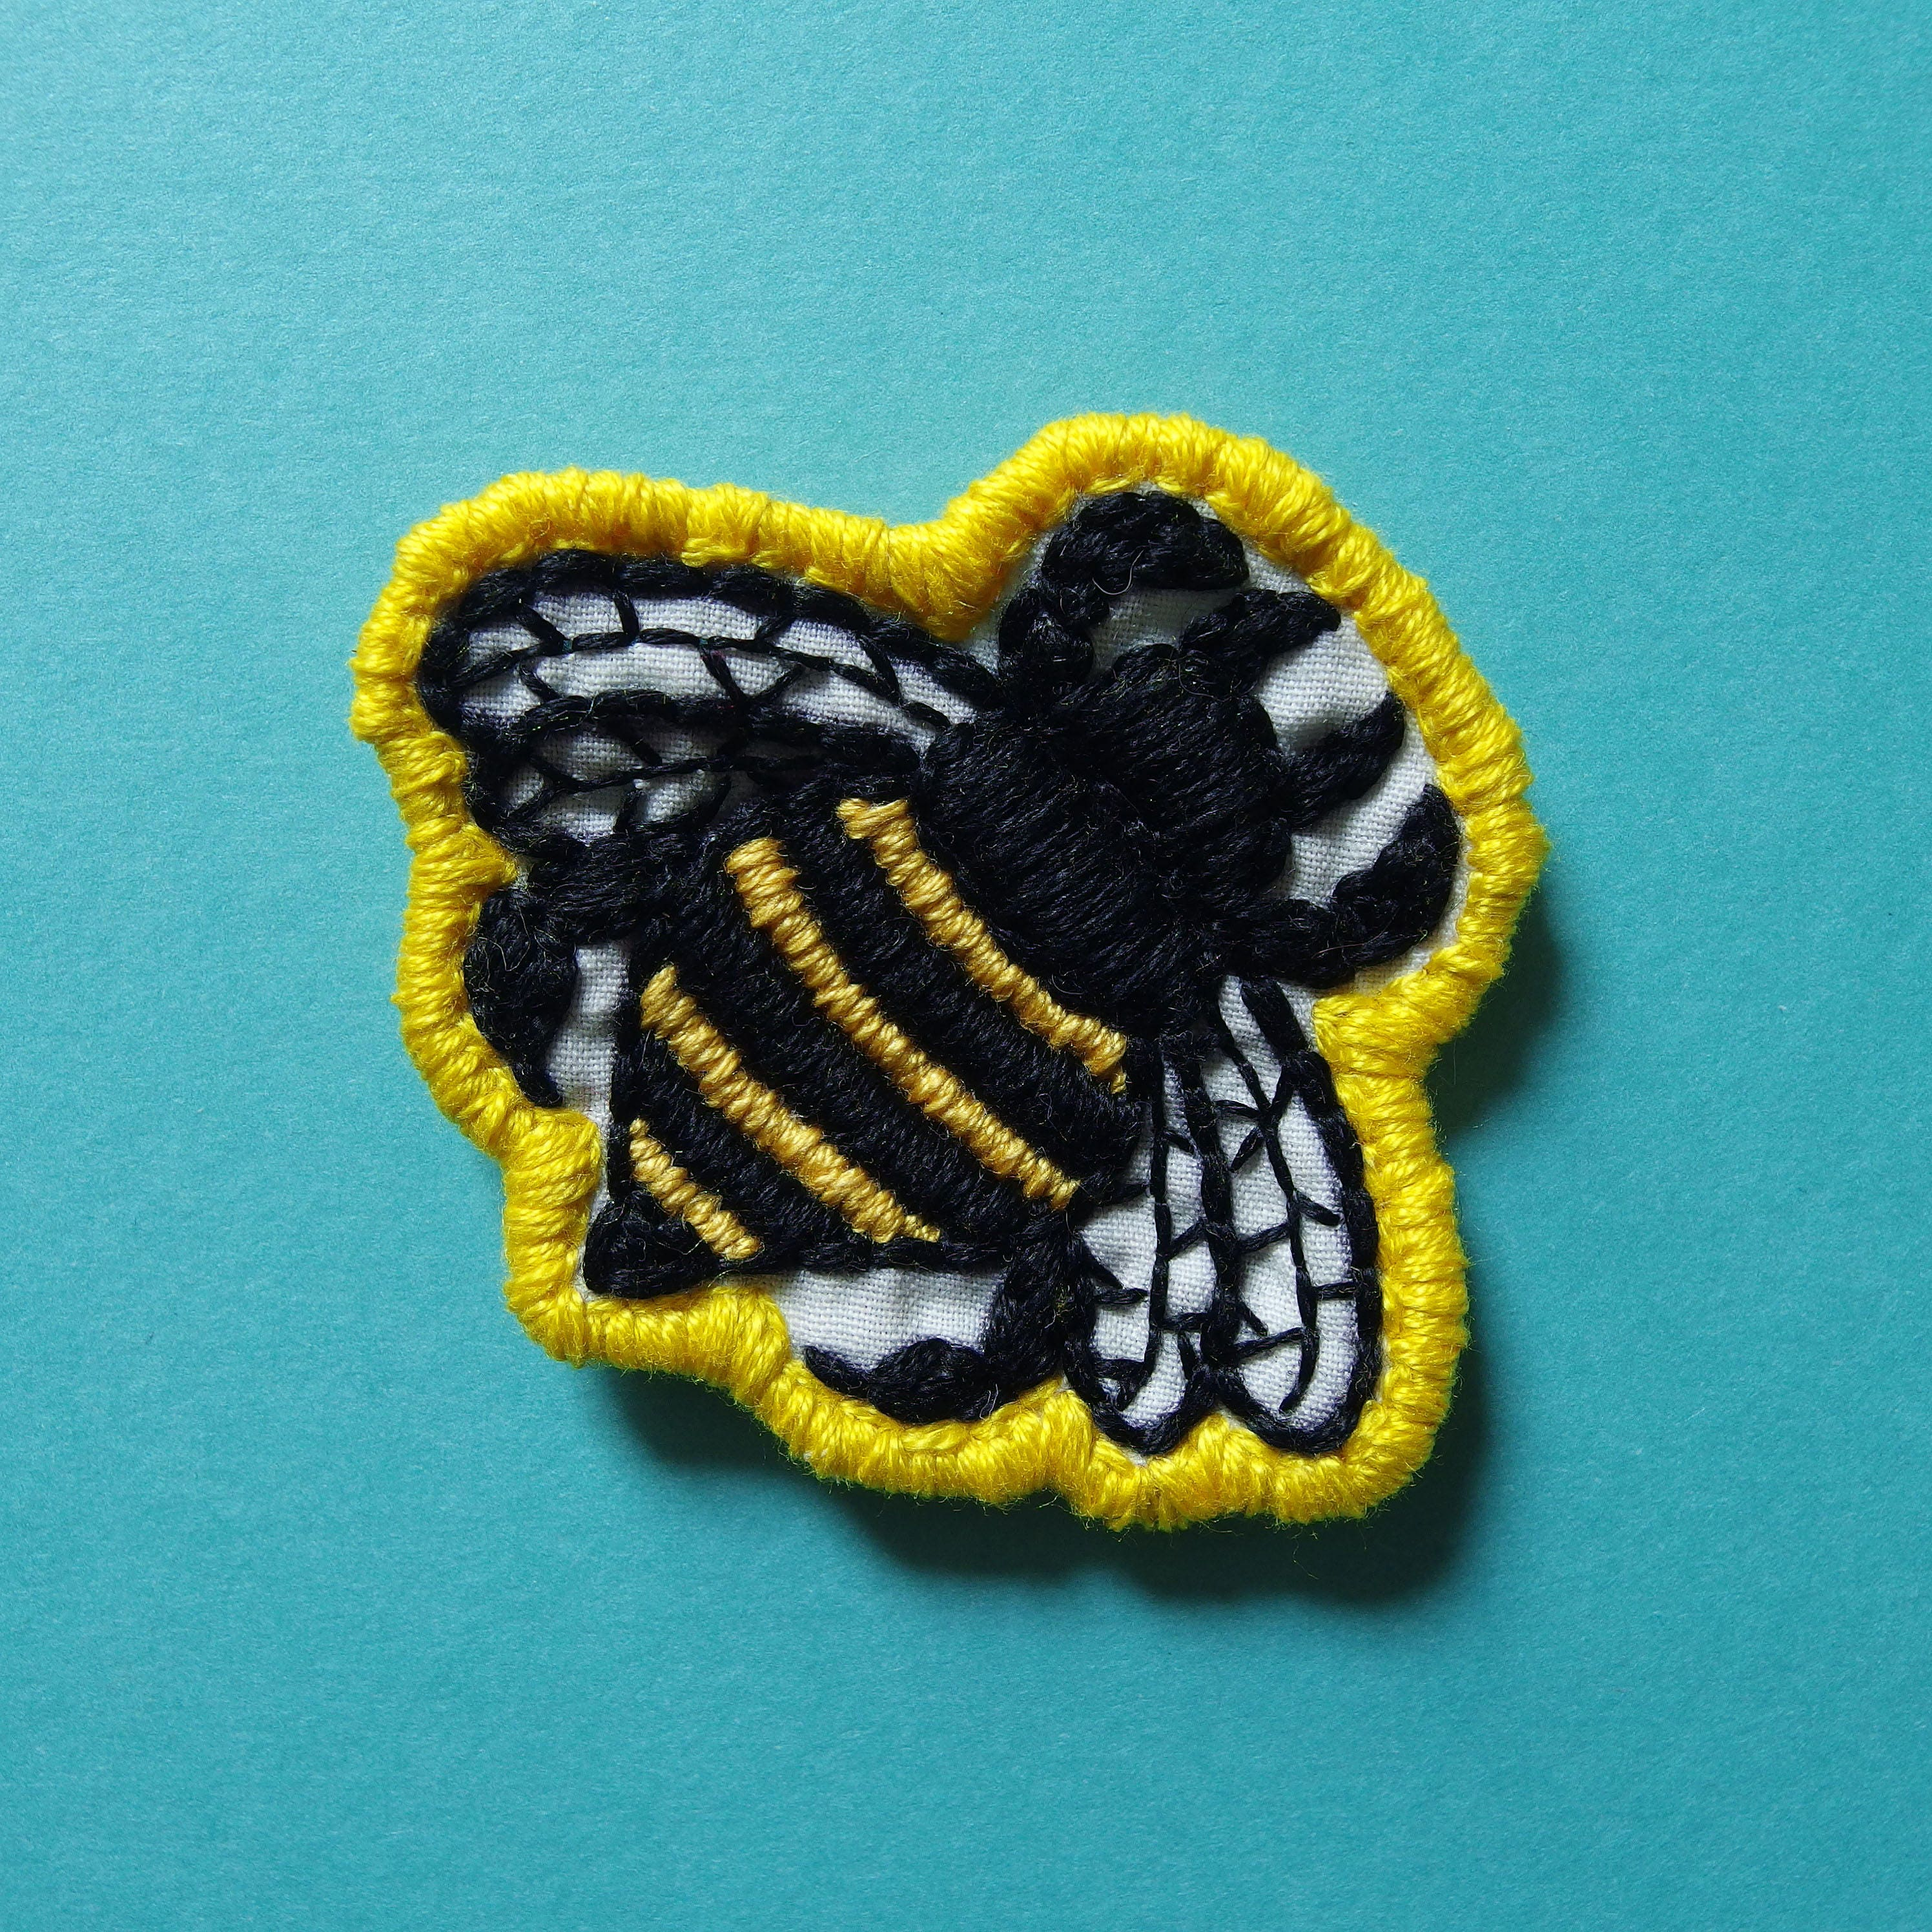 Diy Handmade Embroidered Patch: Bumblebee Handmade Embroidered 2 Patch